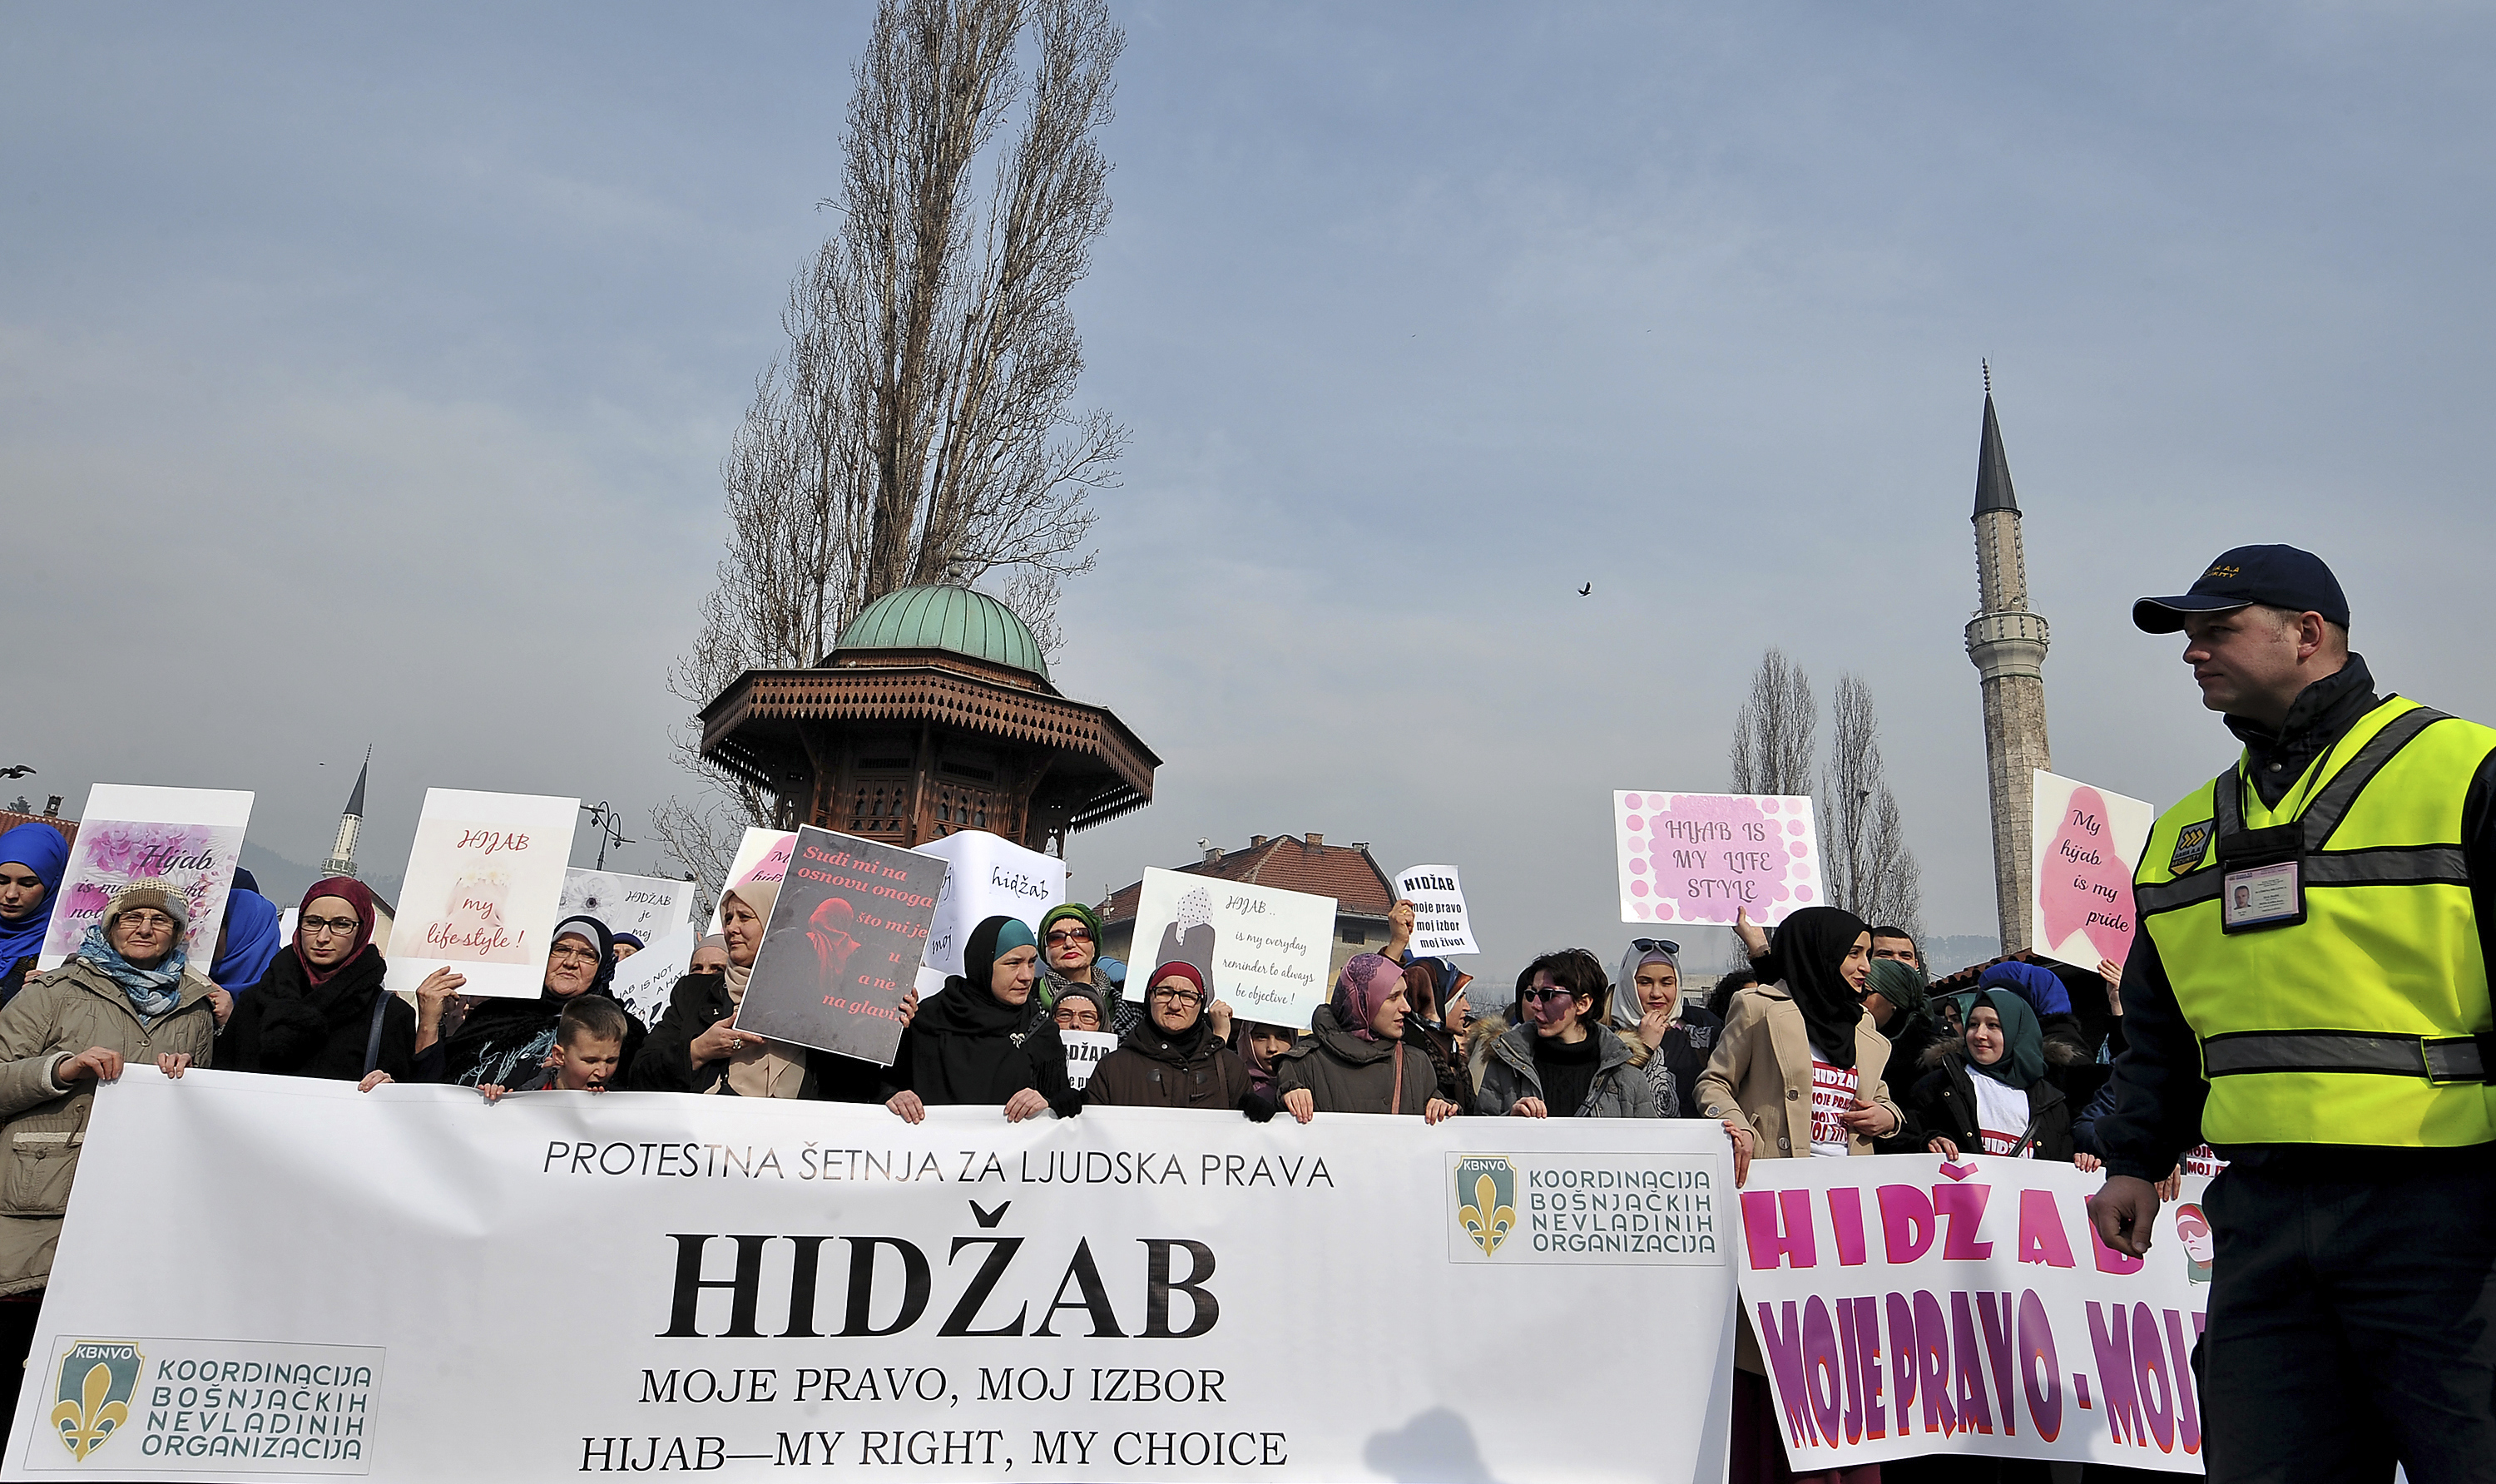 Hundreds of Muslim women wearing the traditional Muslim headscarf also known as hijab protest in Sarajevo's historical center, on February 7, 2016.